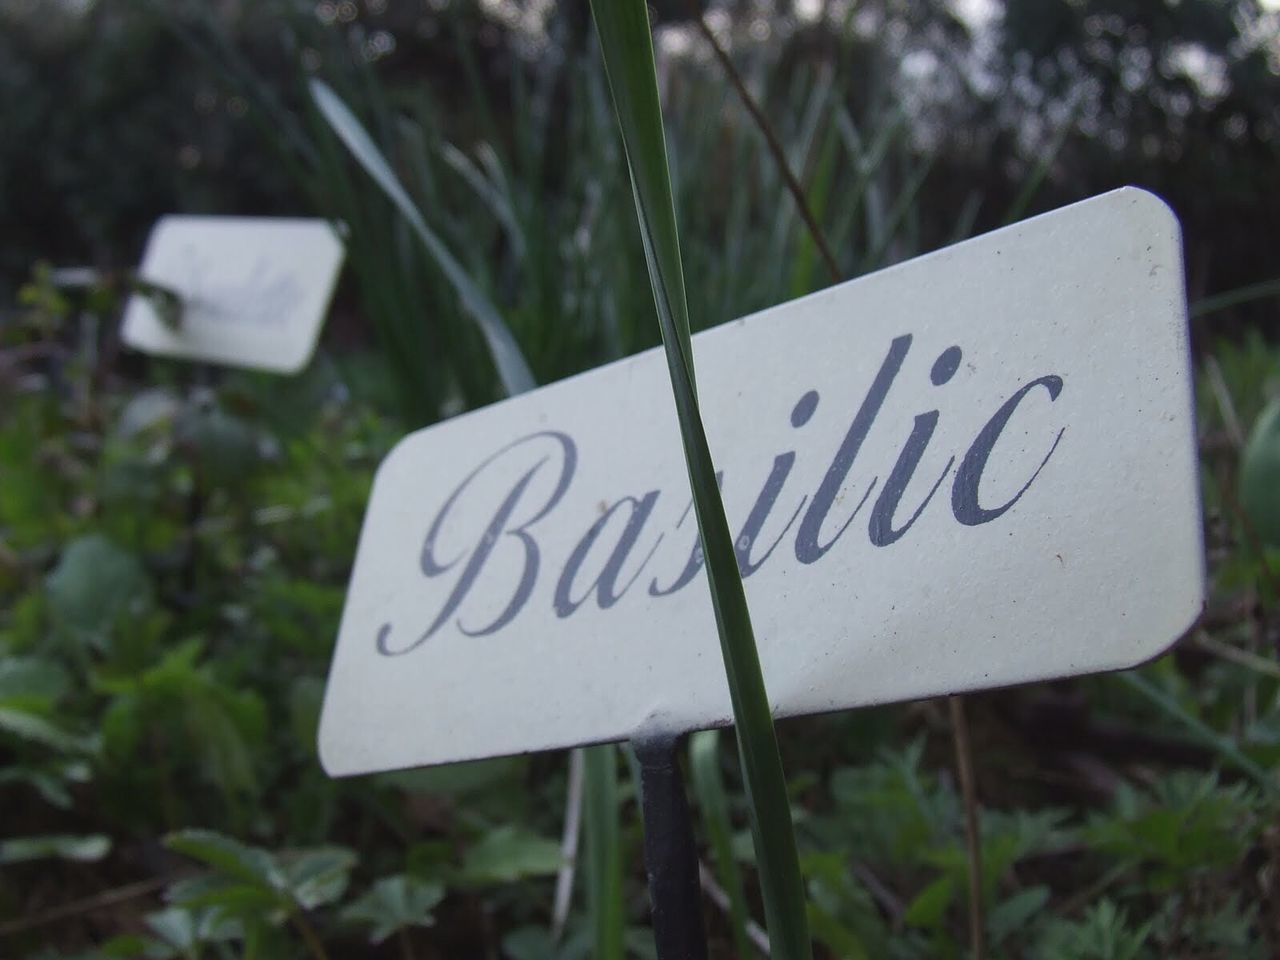 Basilica Basilic Fresh Produce Spices Grass Garden Plant Ingredients Cooking